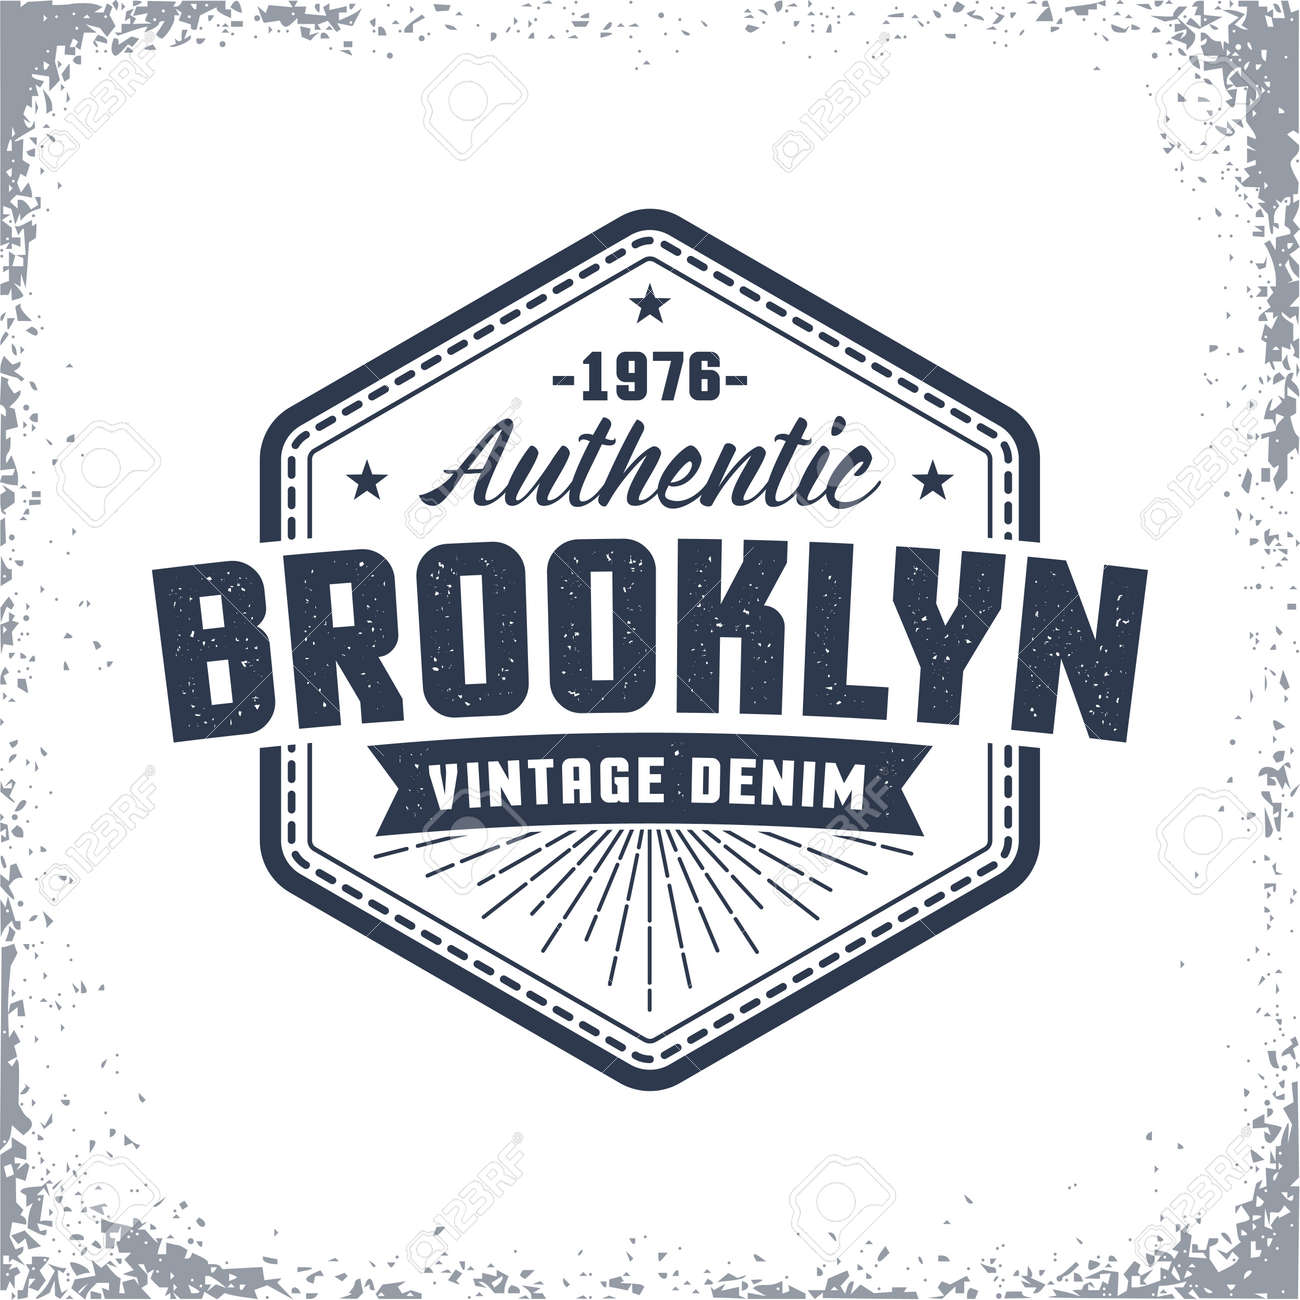 Brooklyn vintage logo with grunge effect. Classic urban American print, label, badge on clothes. Stock Vector - 86143899